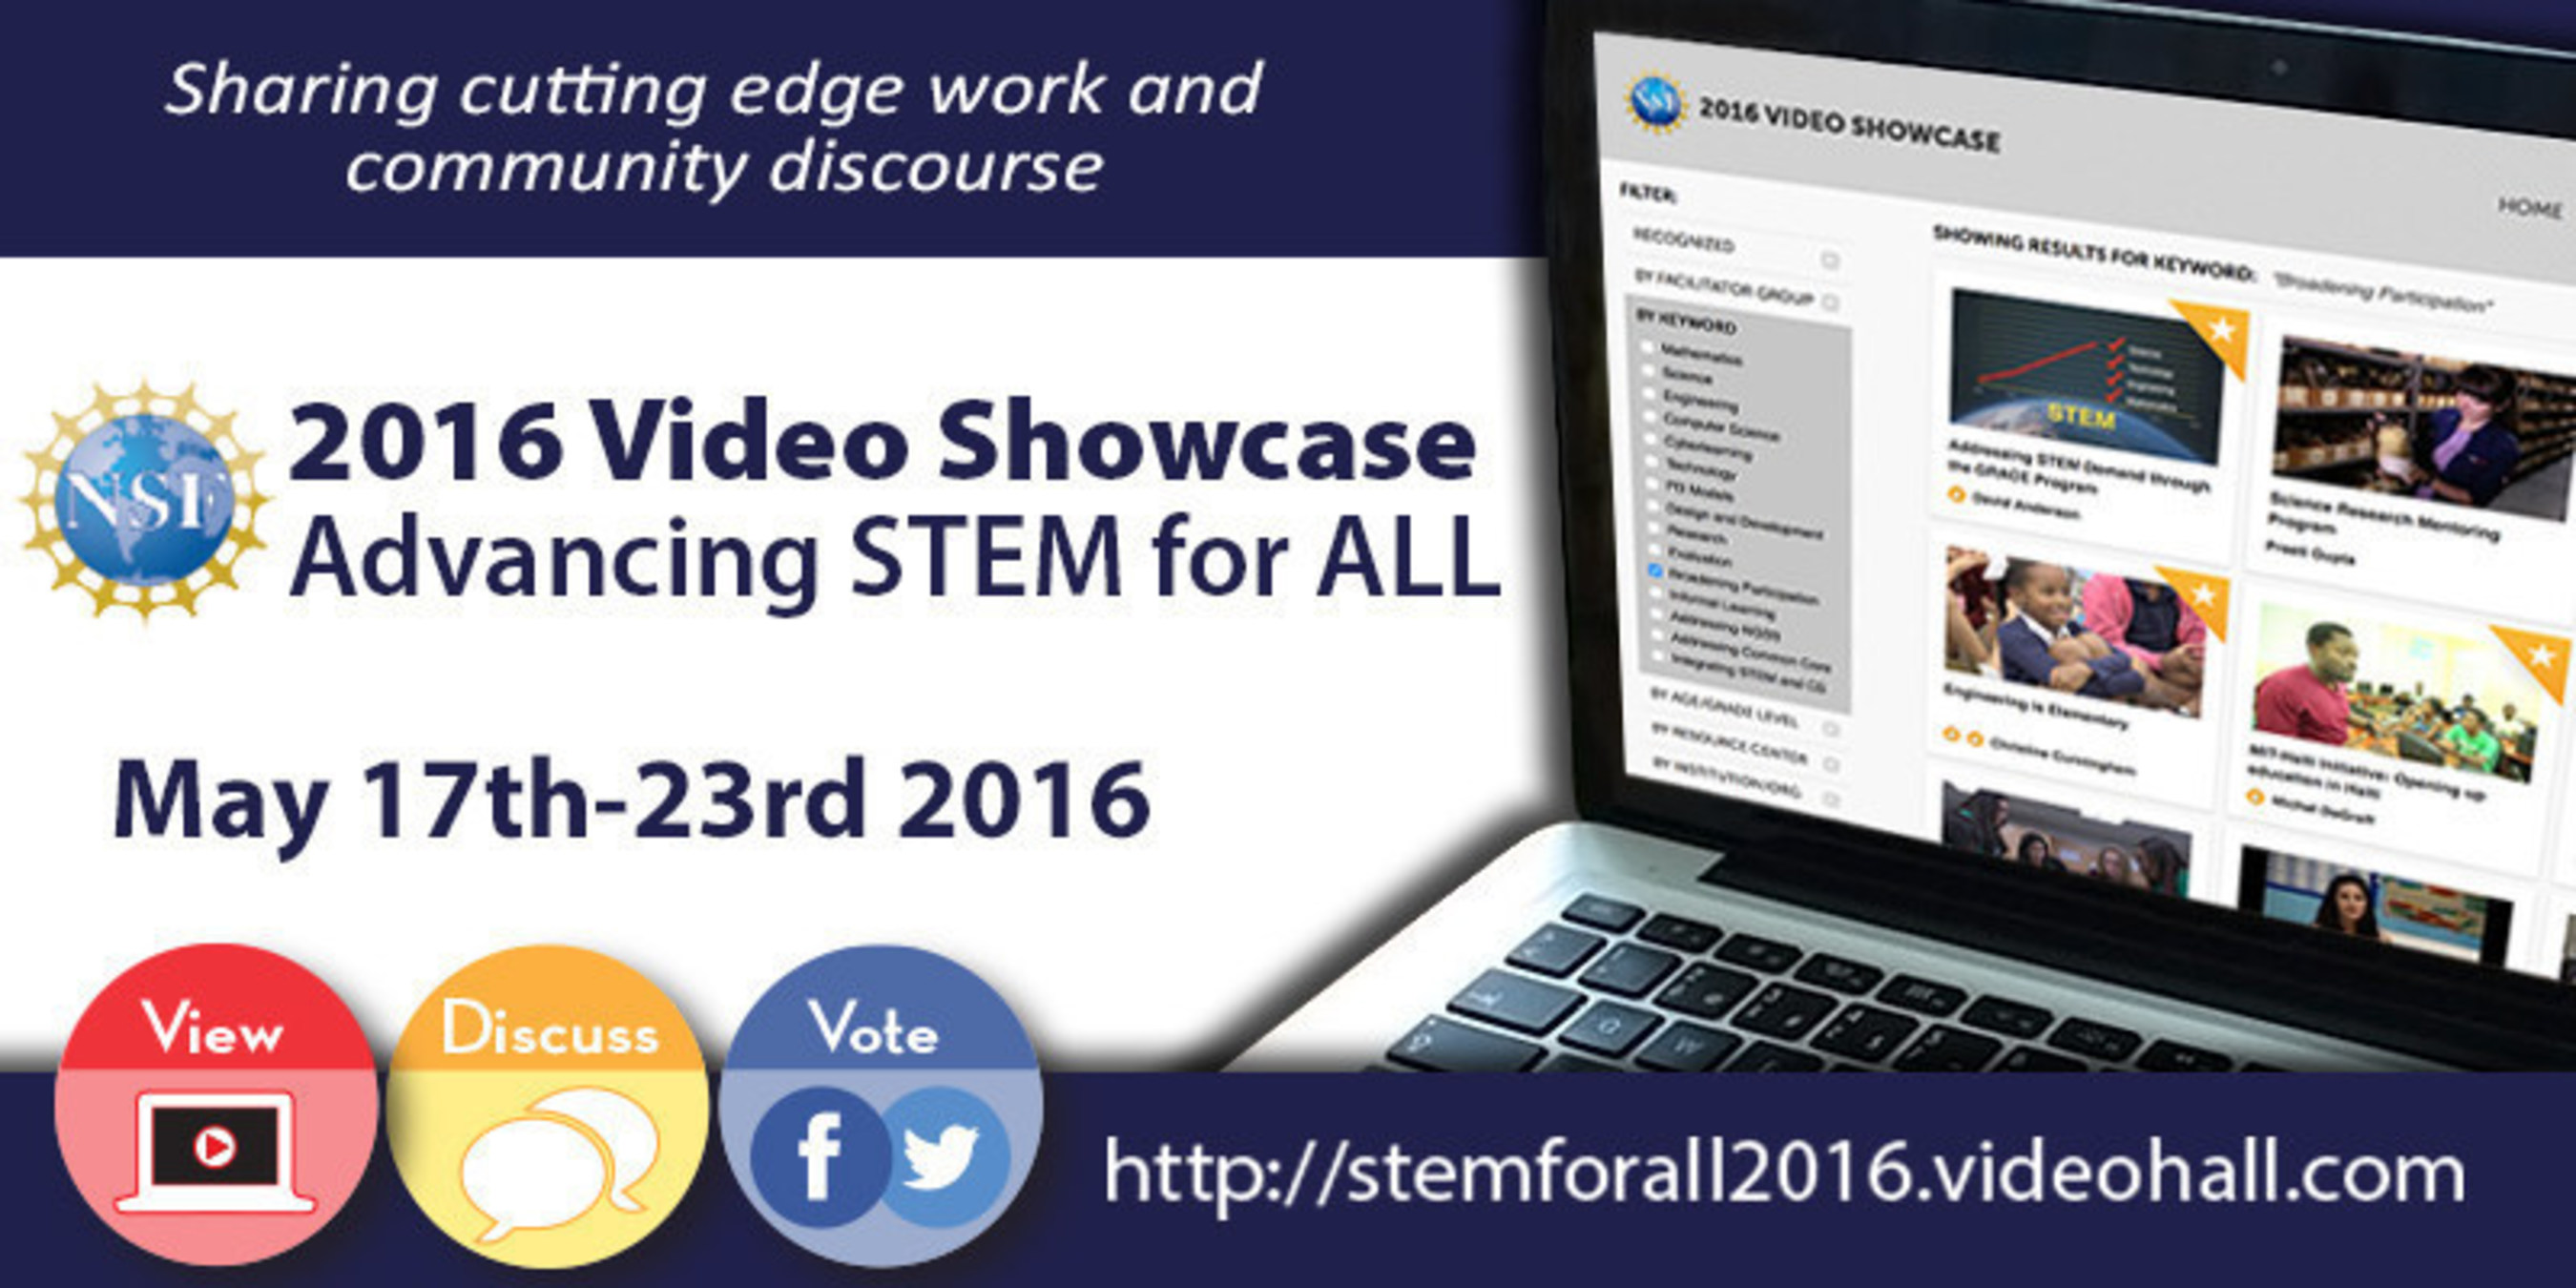 STEM for All Showcase invites public dialogue on innovative education research.